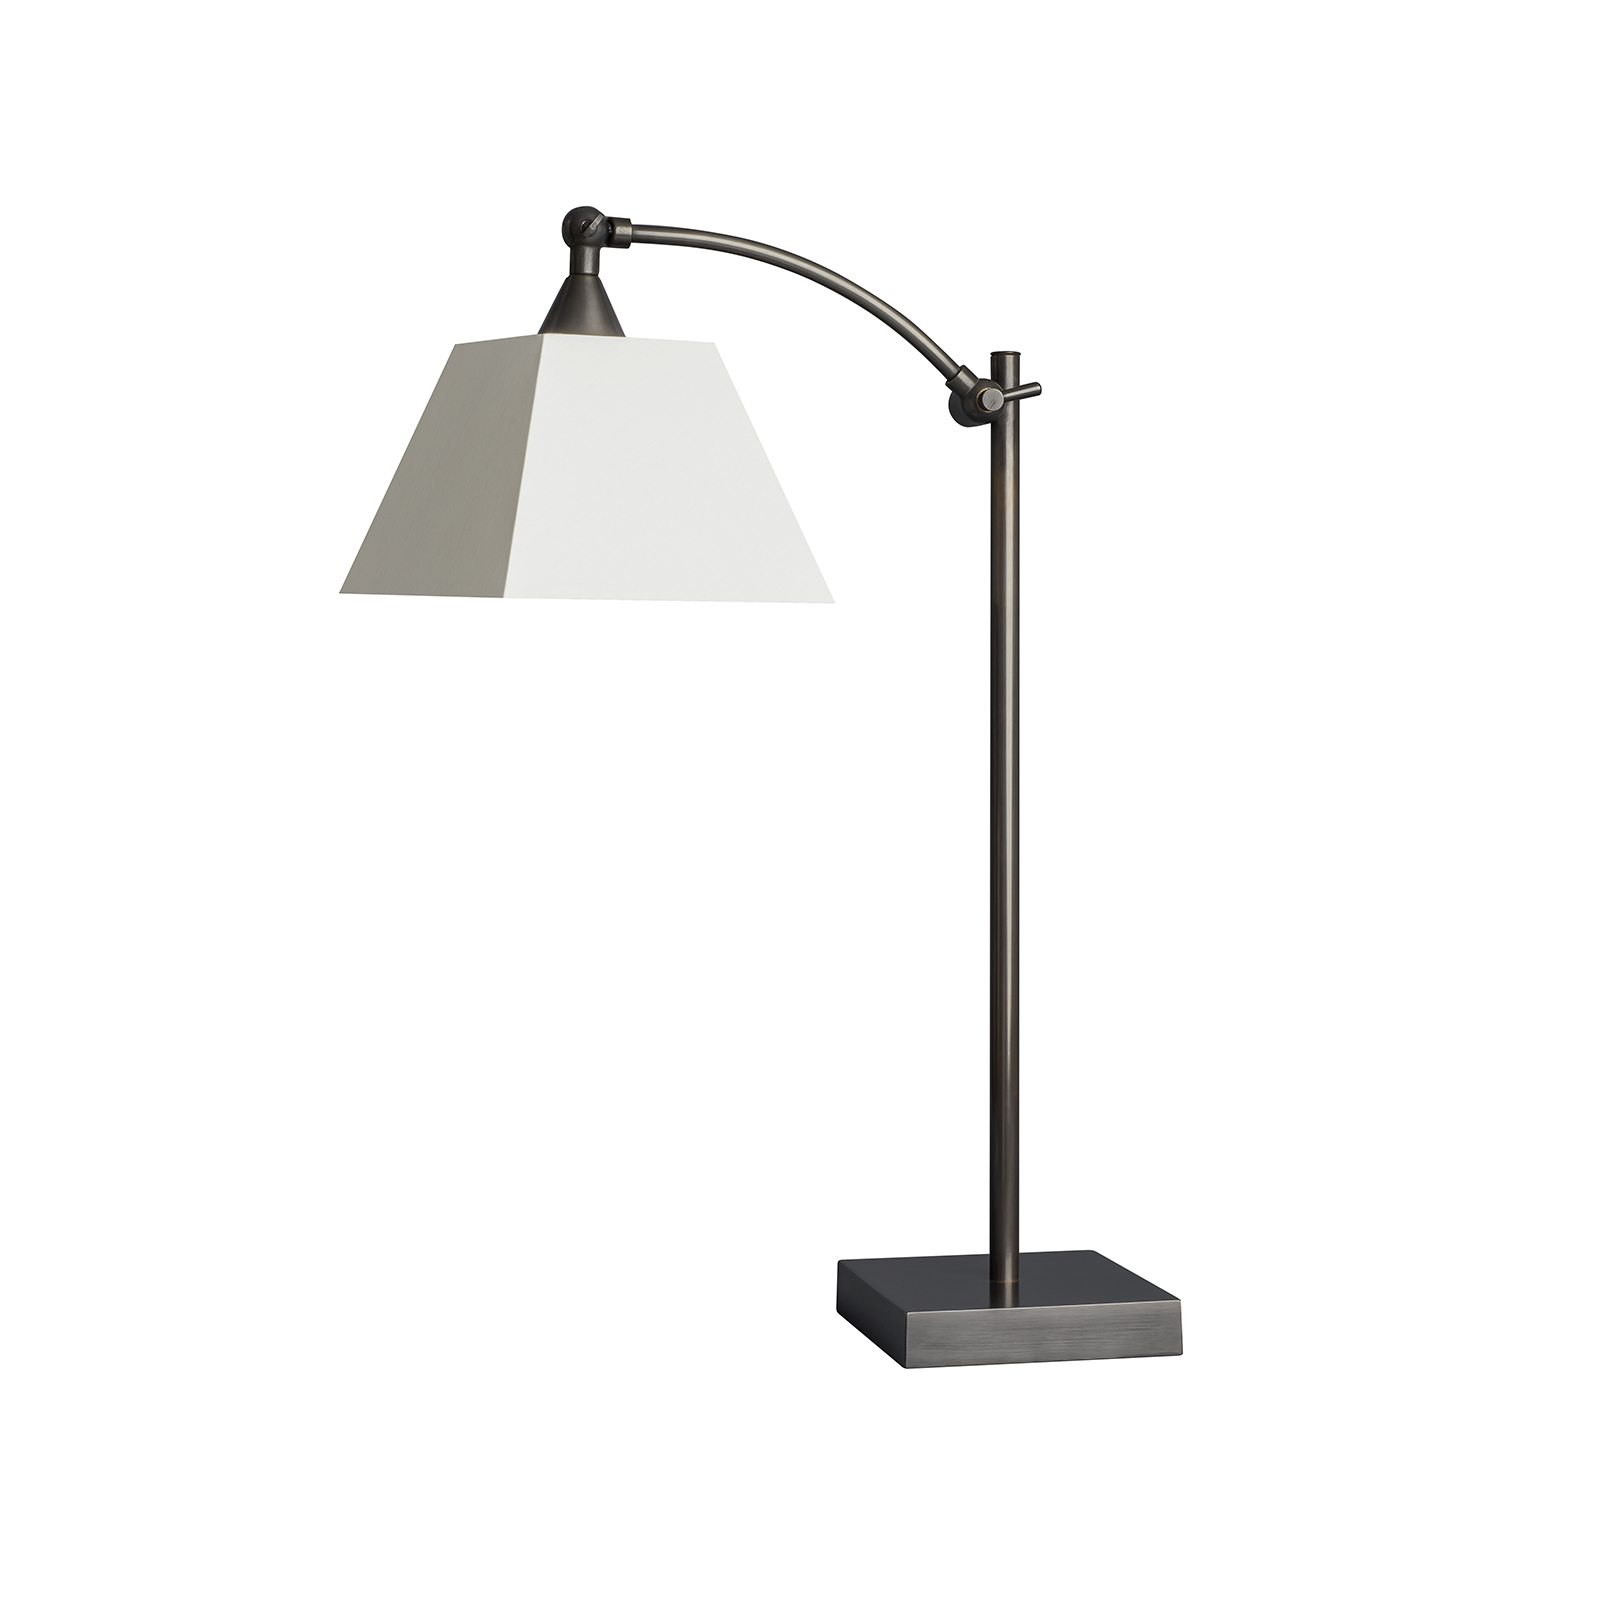 Minimo Table Lamp by Bonham & Bonham